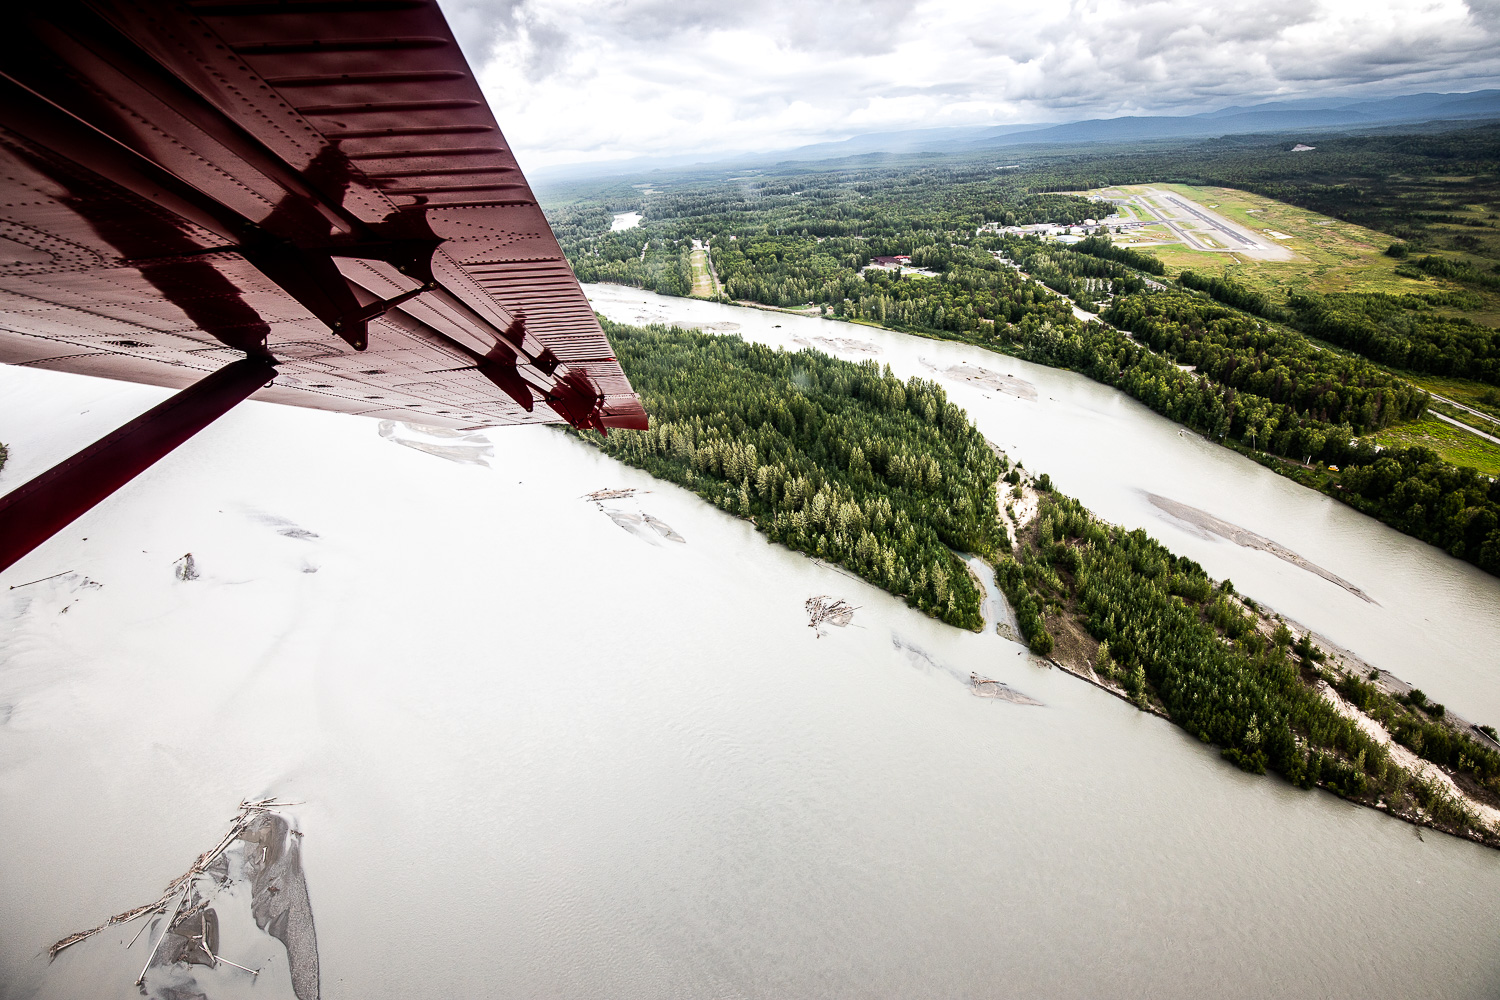 Shortly after take-off from the Talkeetna Airport ( TKA ). Note the airport in the upper right of the frame.